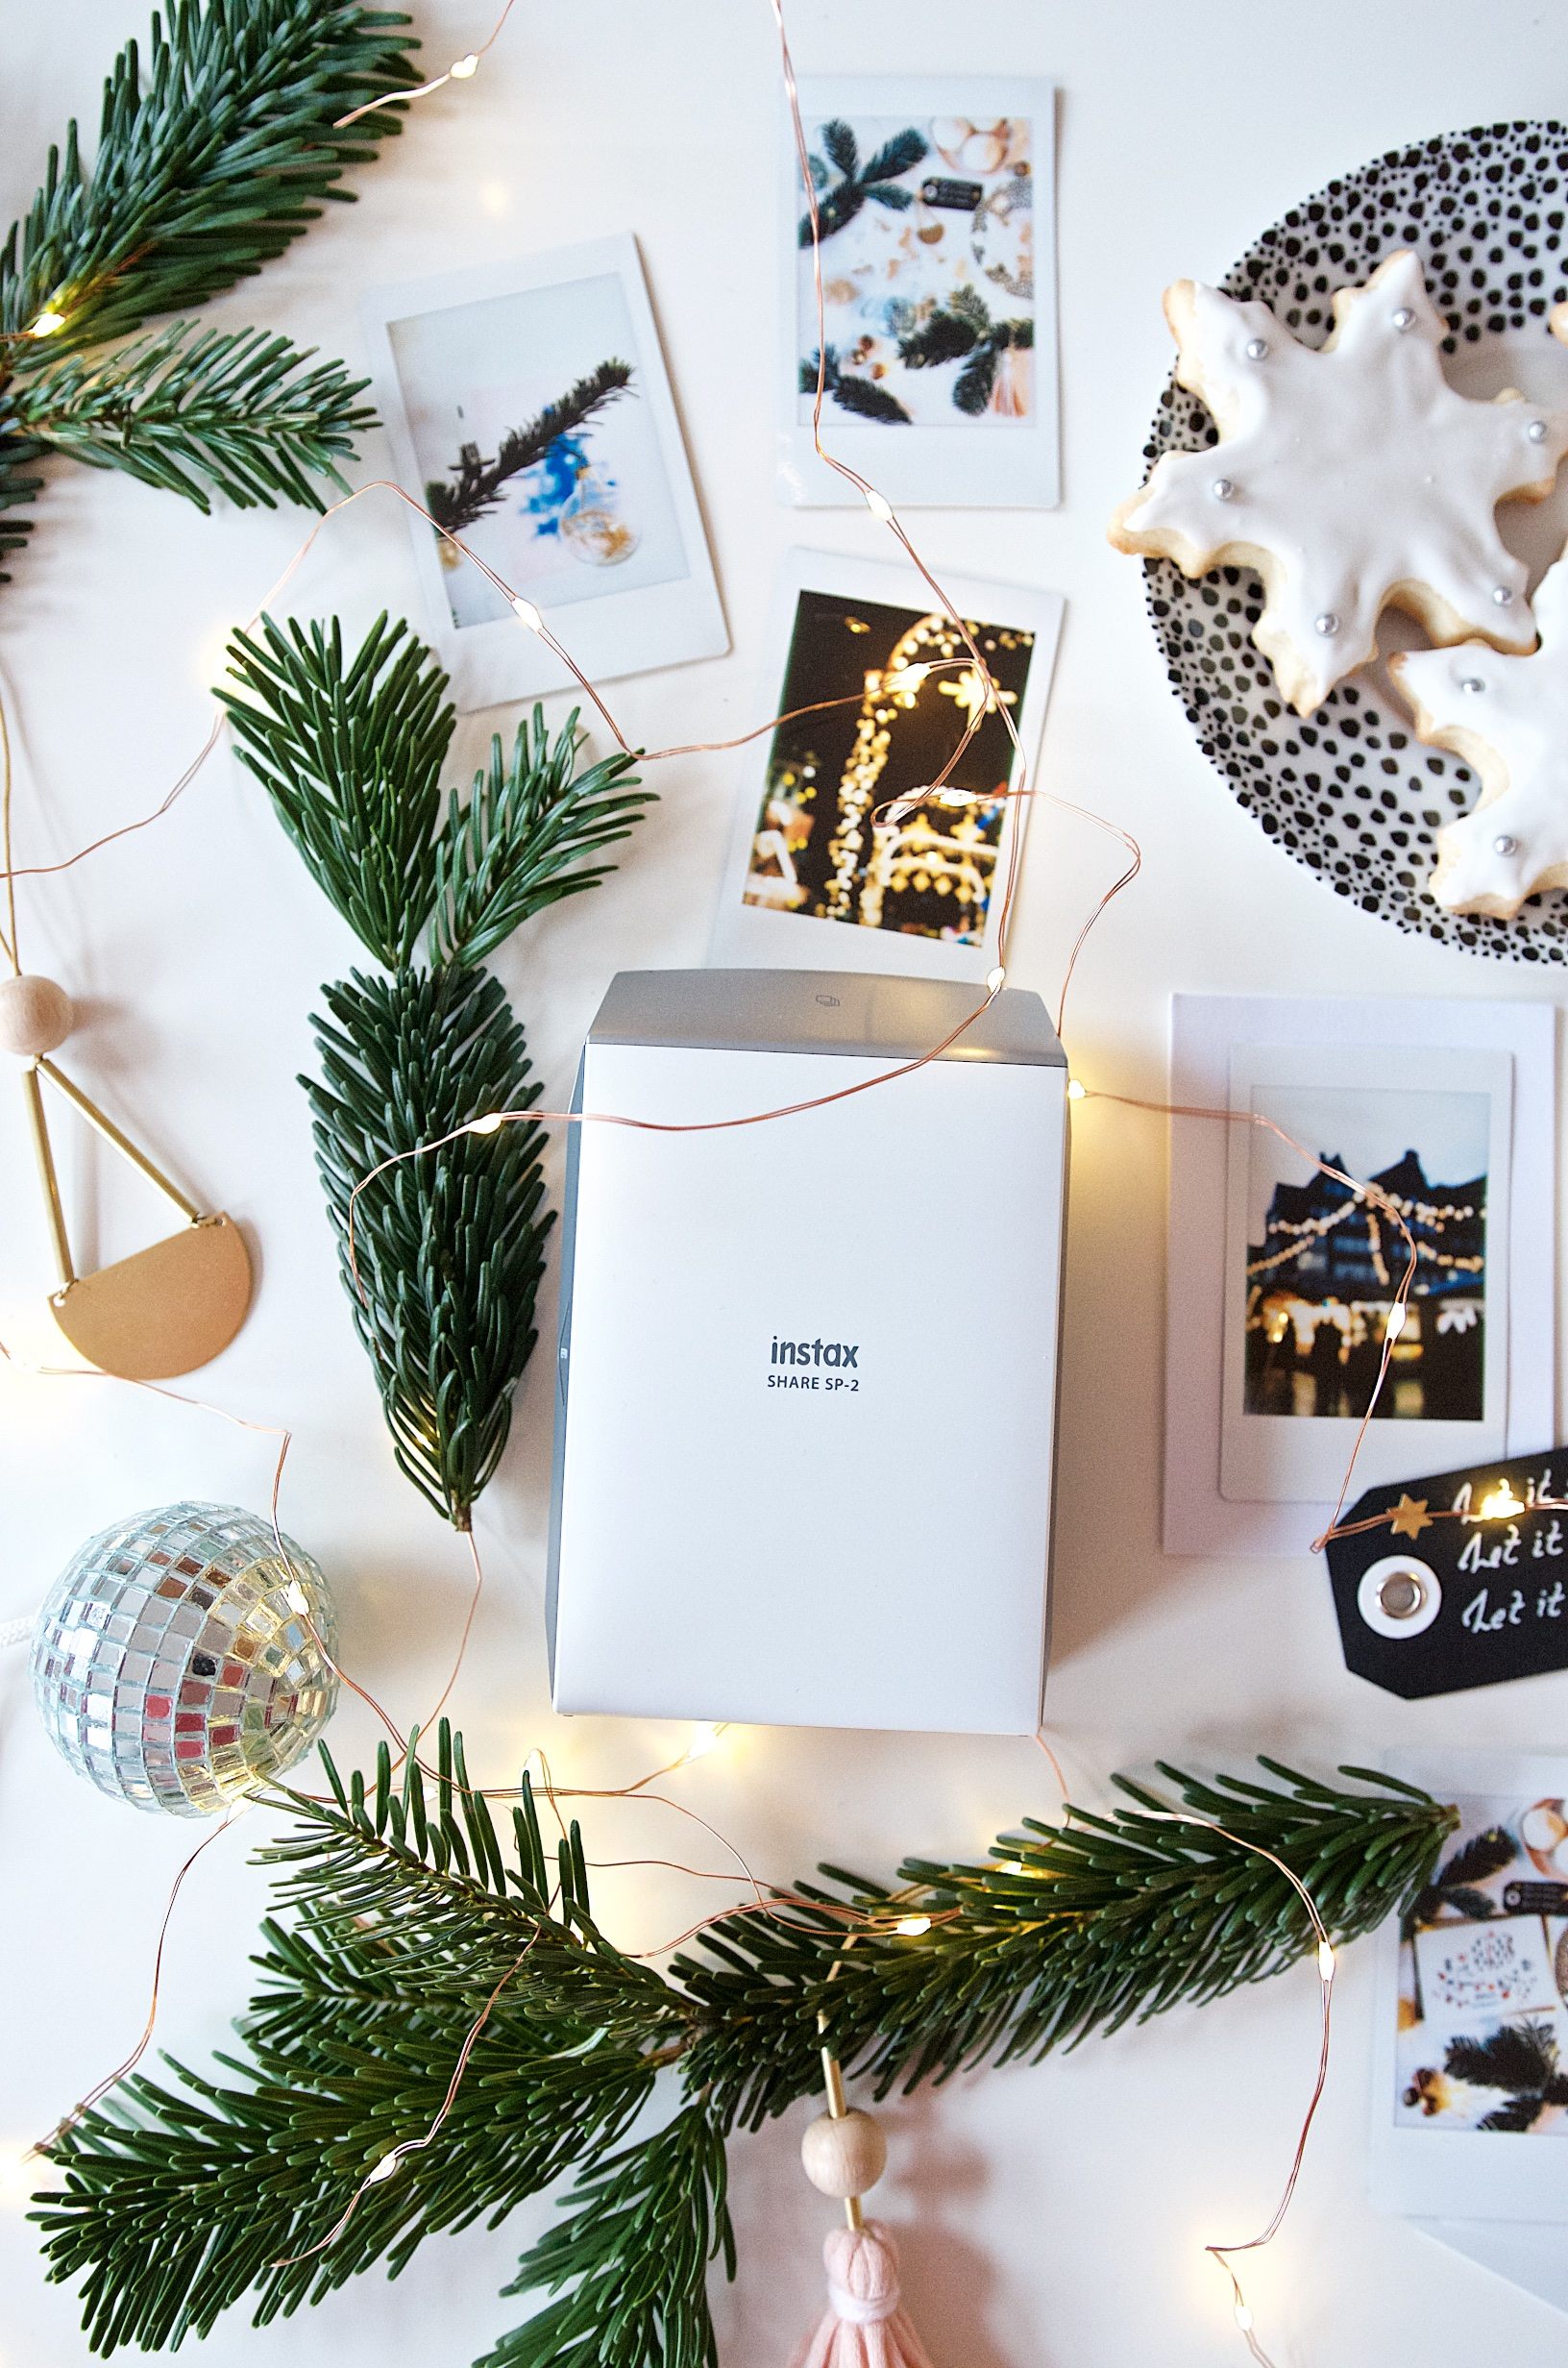 schnell sch n individuell diy weihnachtskarten mit instax foto drucker. Black Bedroom Furniture Sets. Home Design Ideas